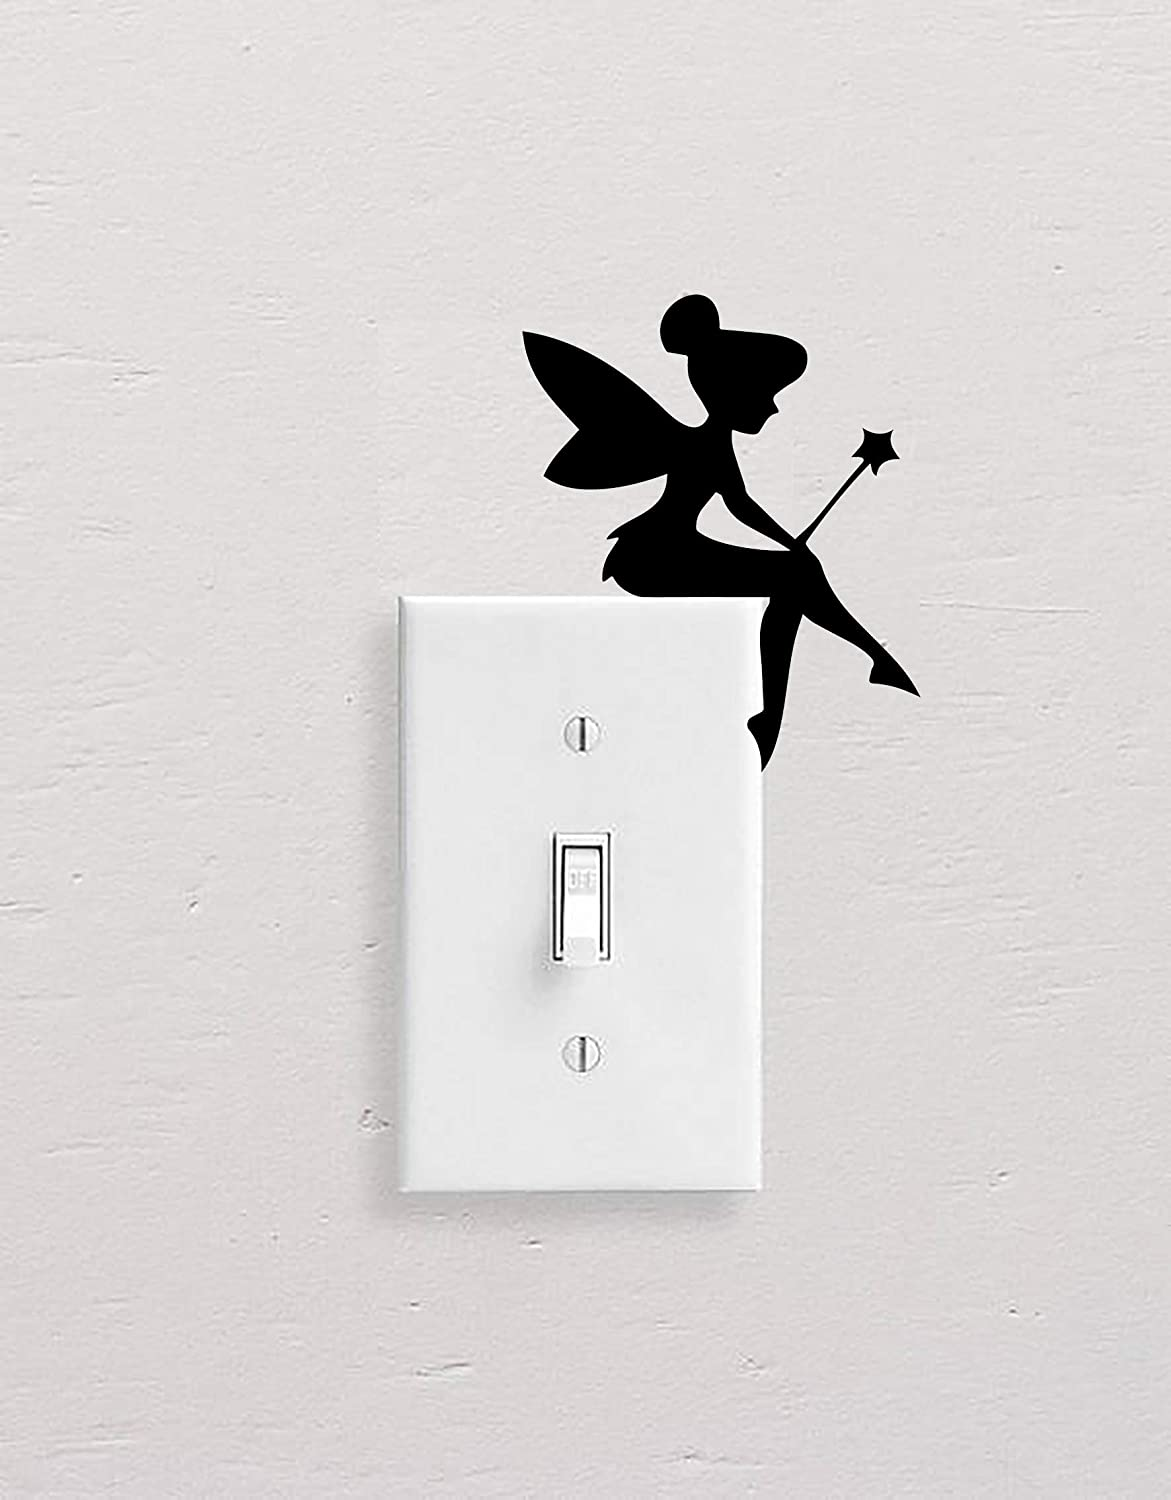 Vinyl Decal Sticker  Tinkerbell Fairy  for Light Switch, Wall, Laptop, Water Bottle, Car, SUV, Bikes and Home Decor